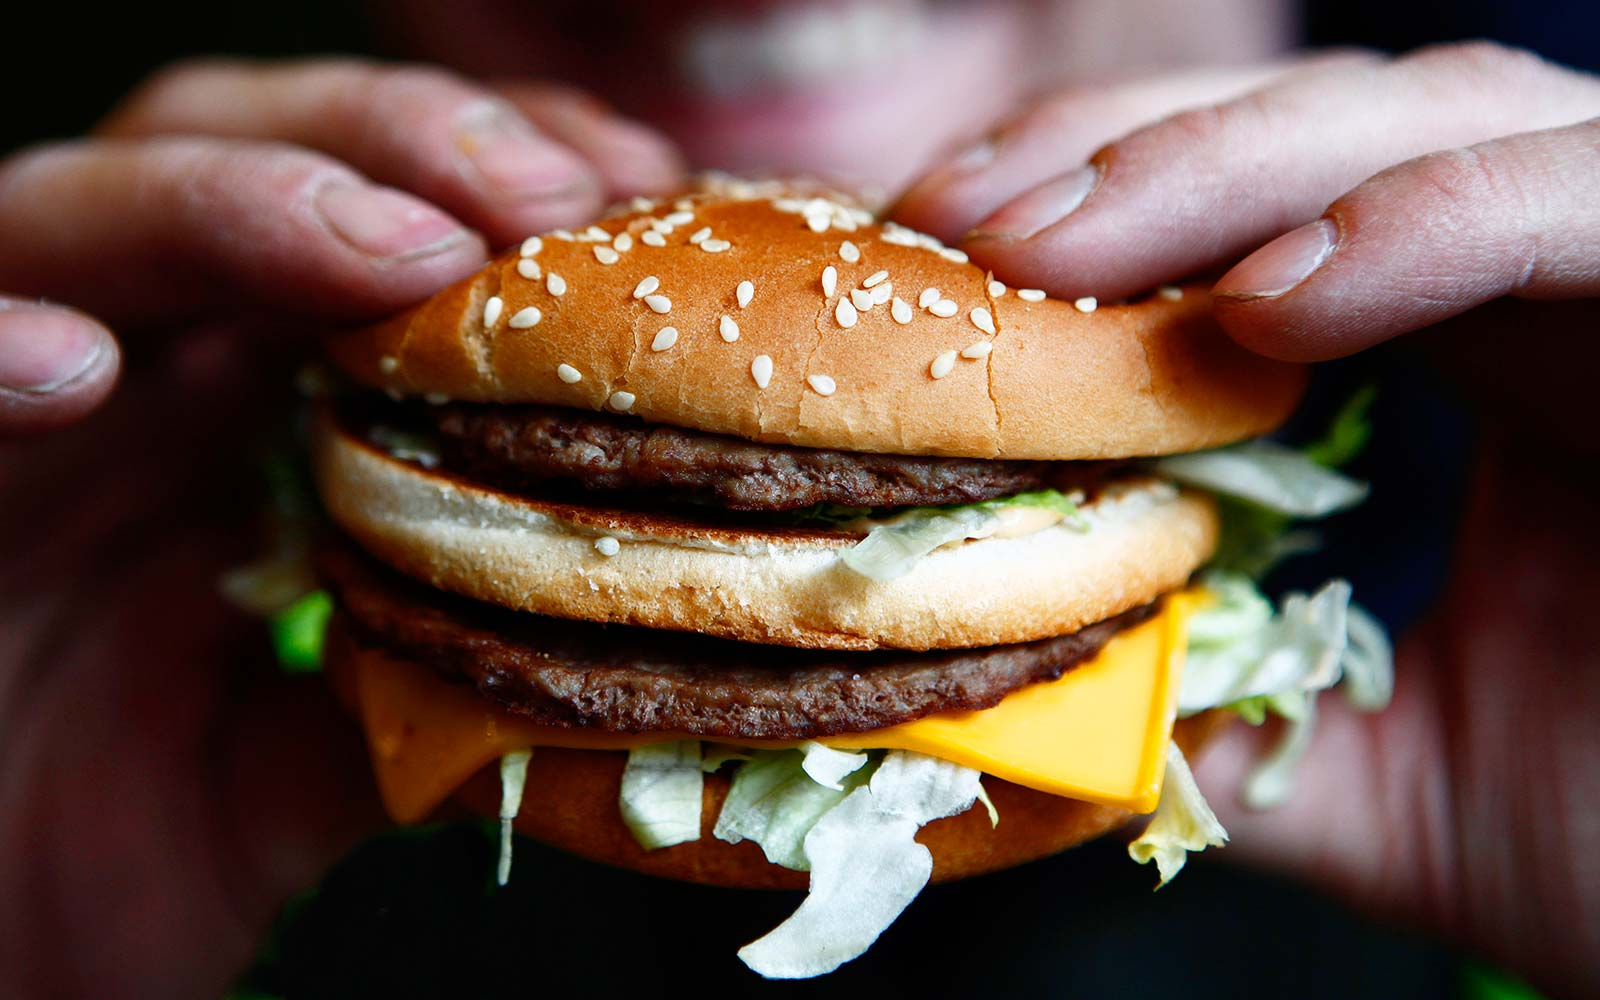 Where to Find the World's Most Expensive Big Mac